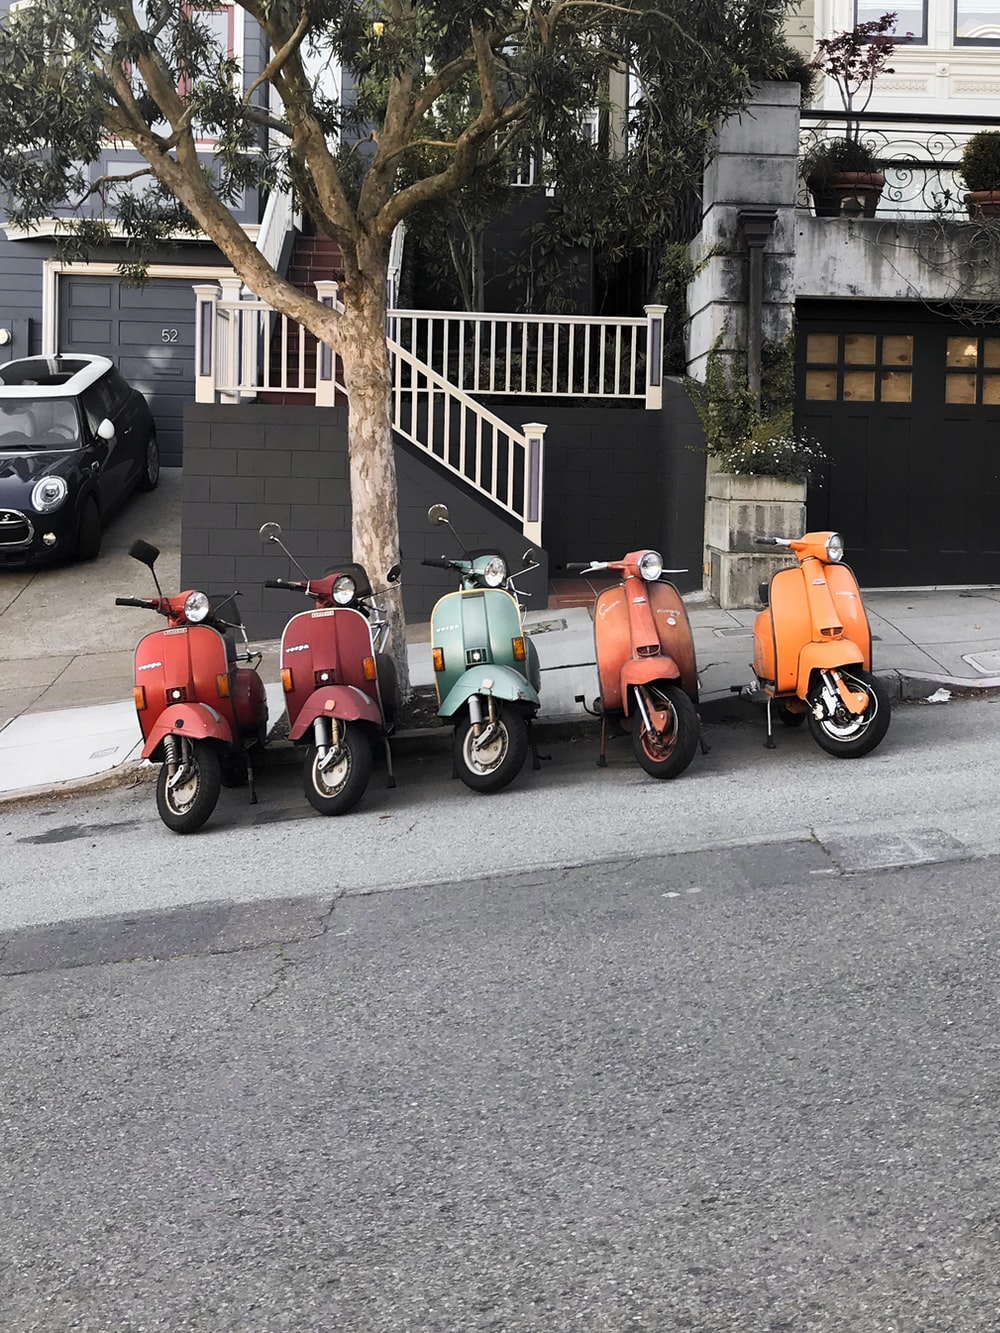 red and green motor scooter parked beside road during daytime